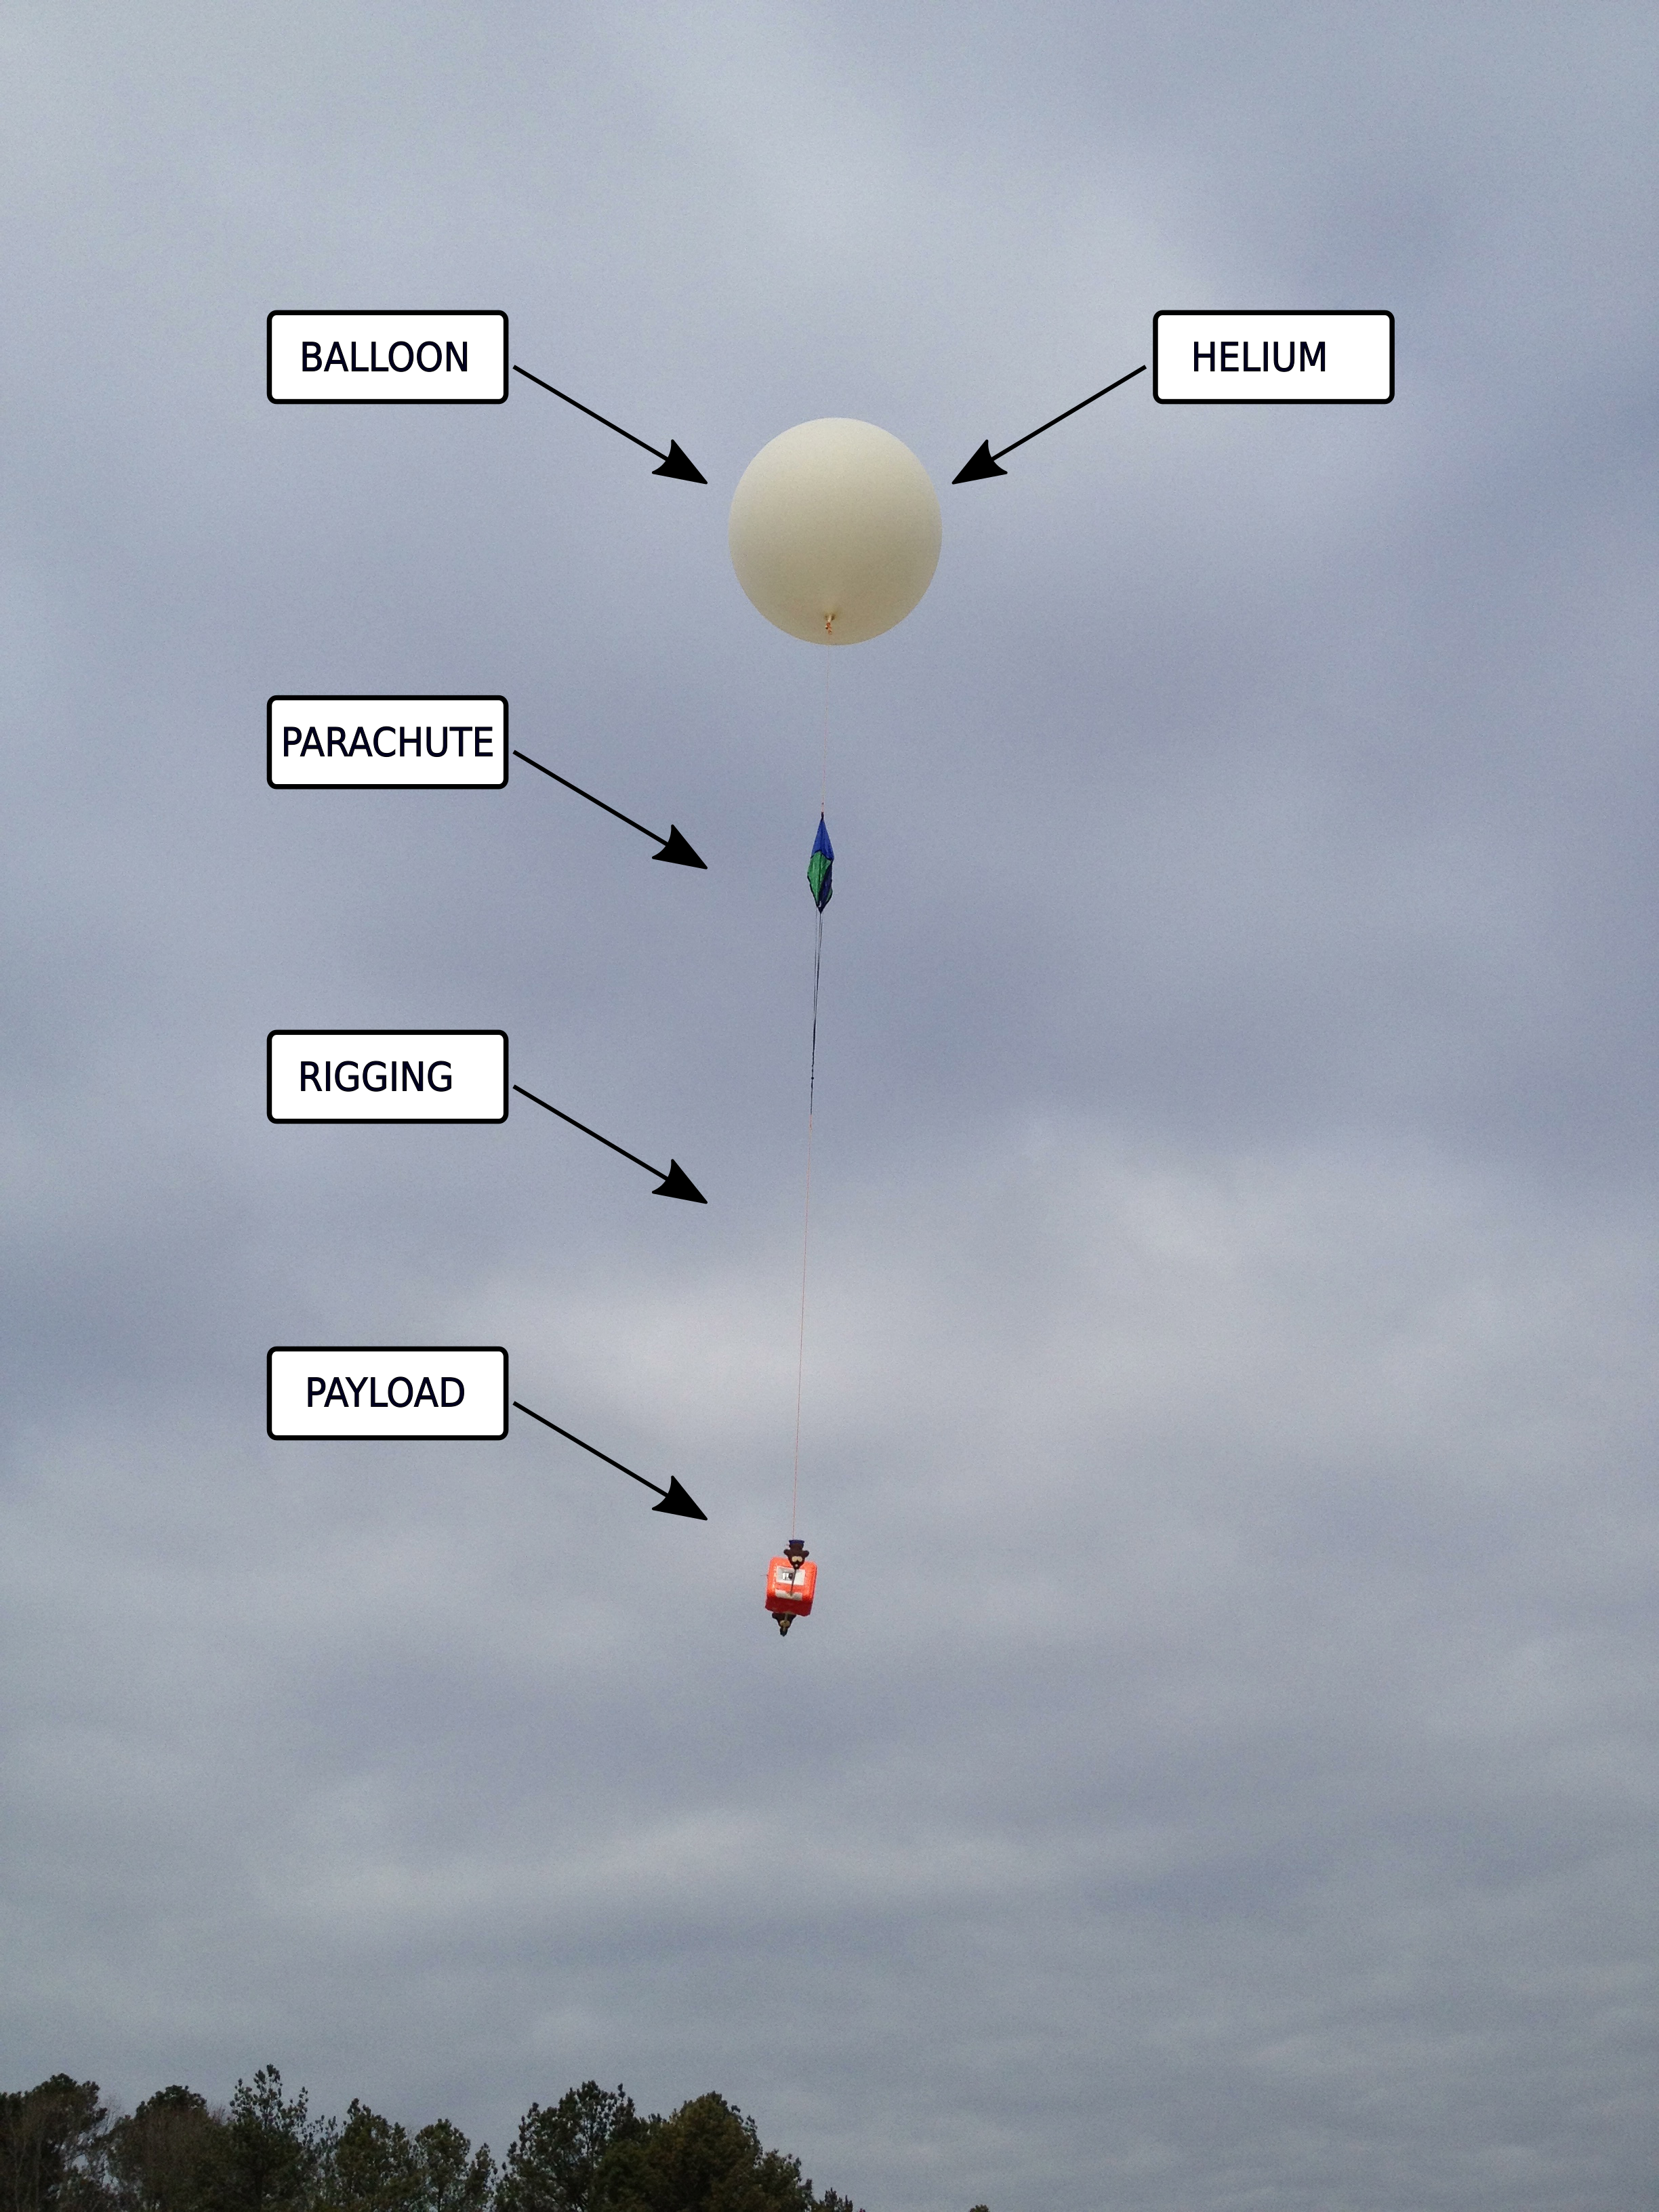 introduction to weather balloons basic air data